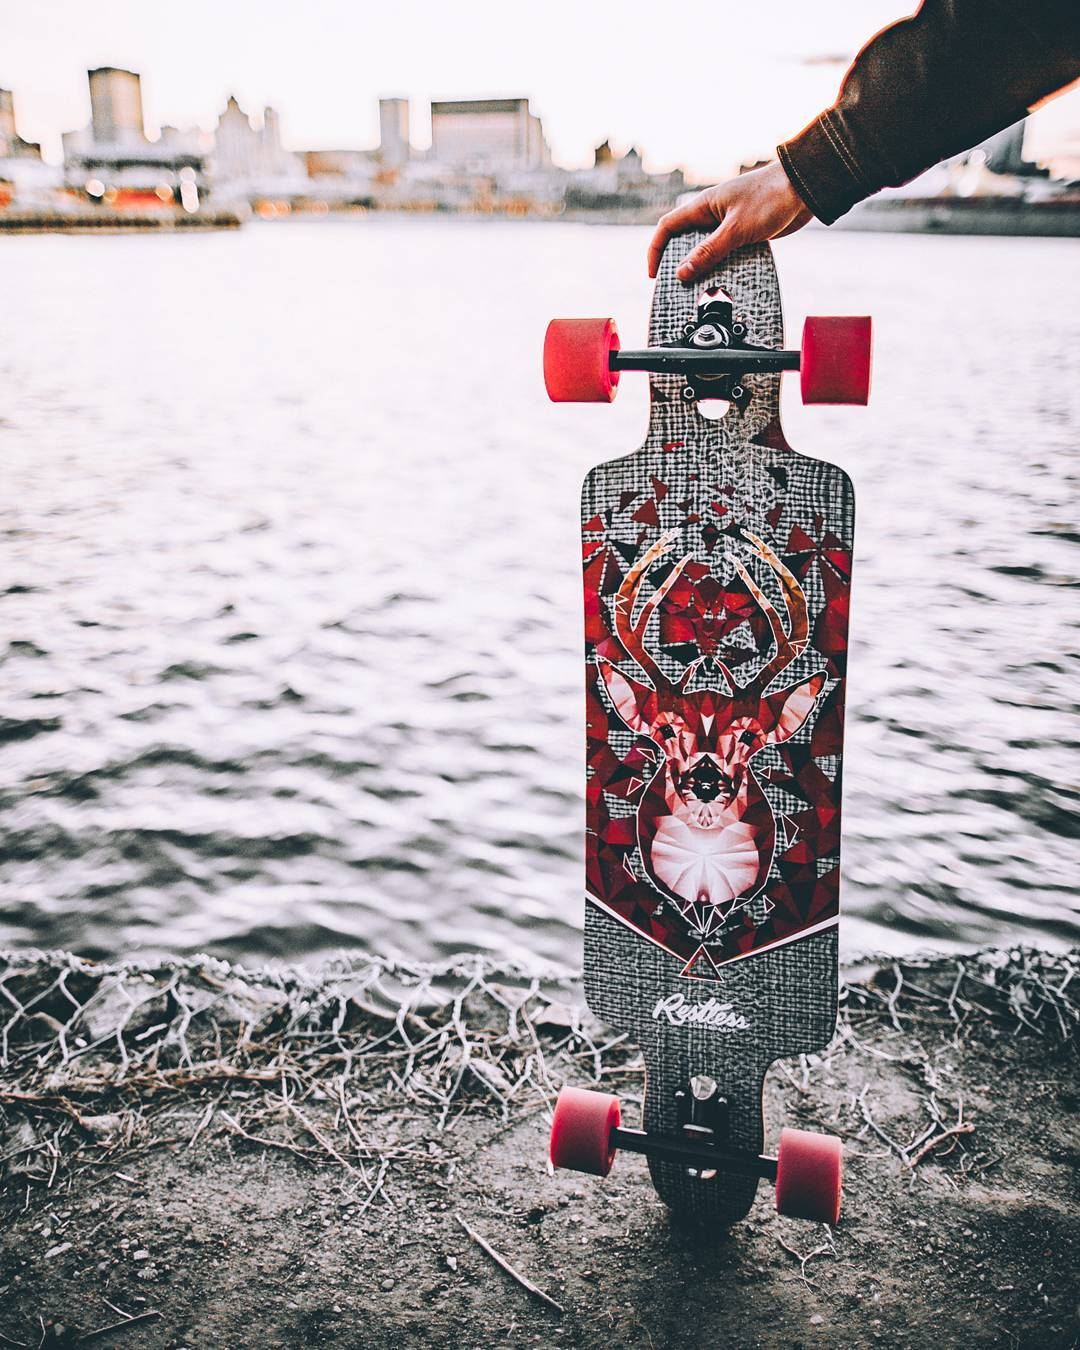 There is no better way than the #restlessSplinter to cruise around and explore your city.  Photo by @refinedmoment